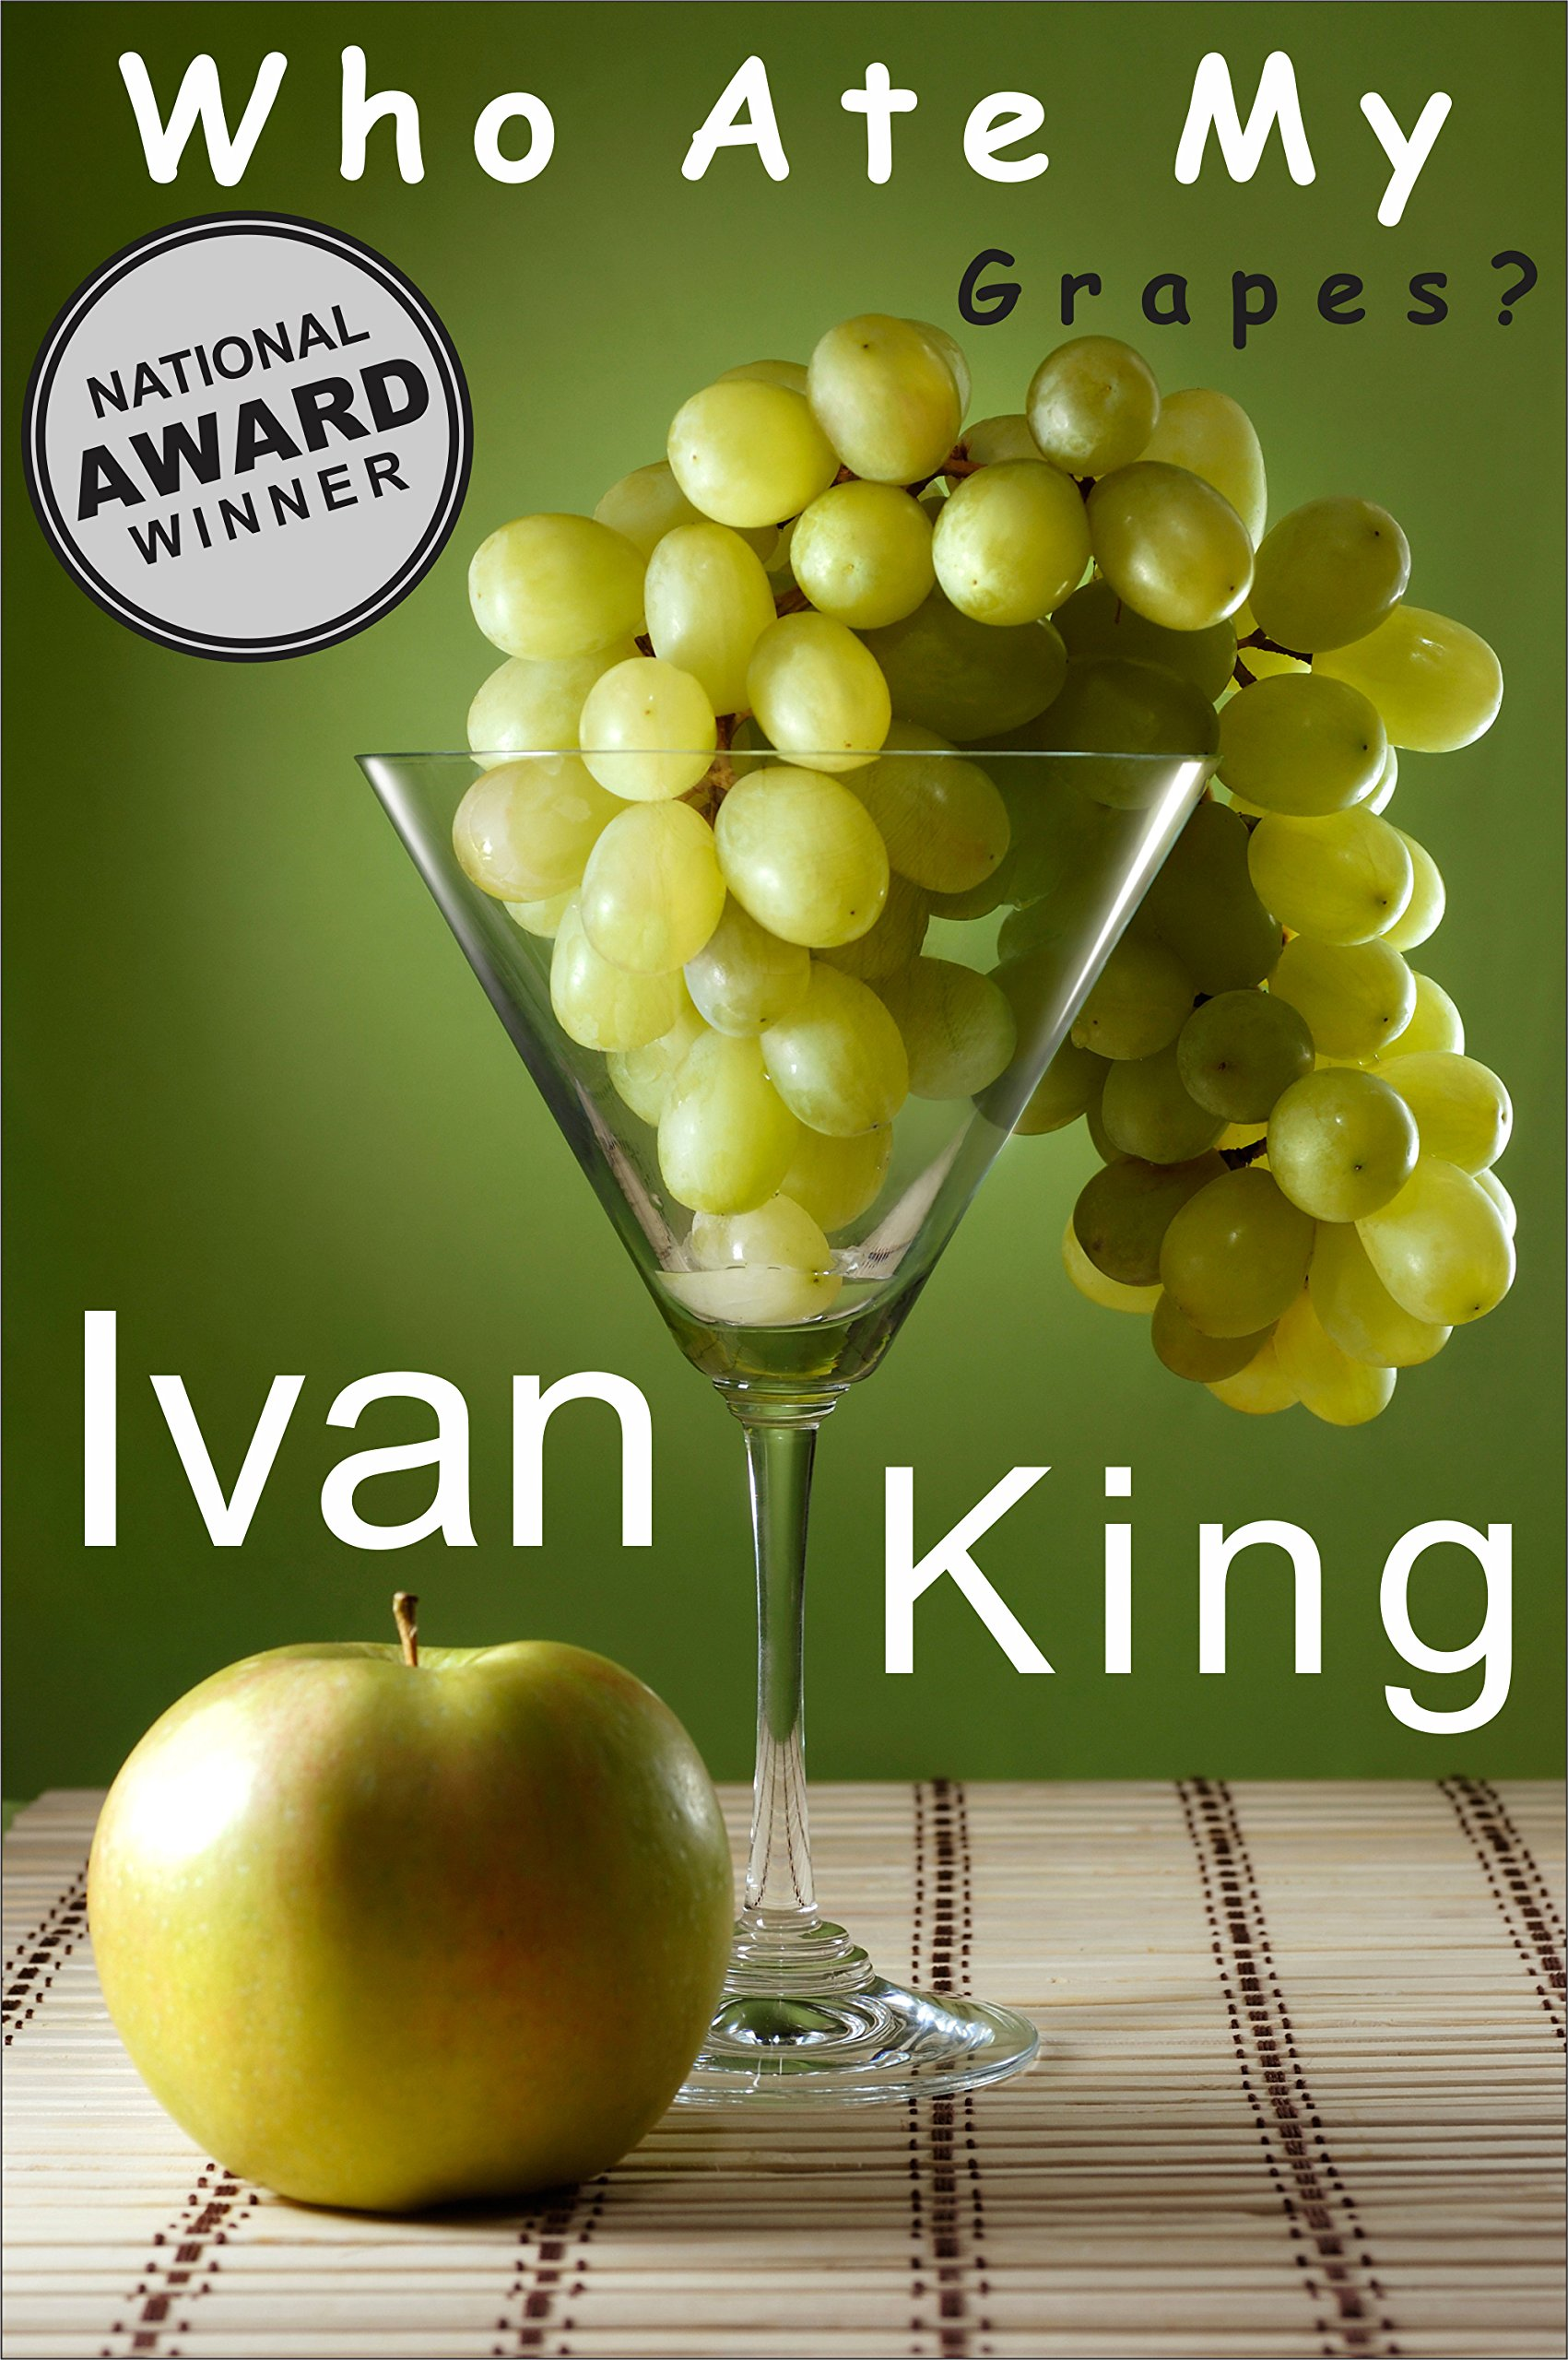 Check Out Ivan KingProducts On Amazon!